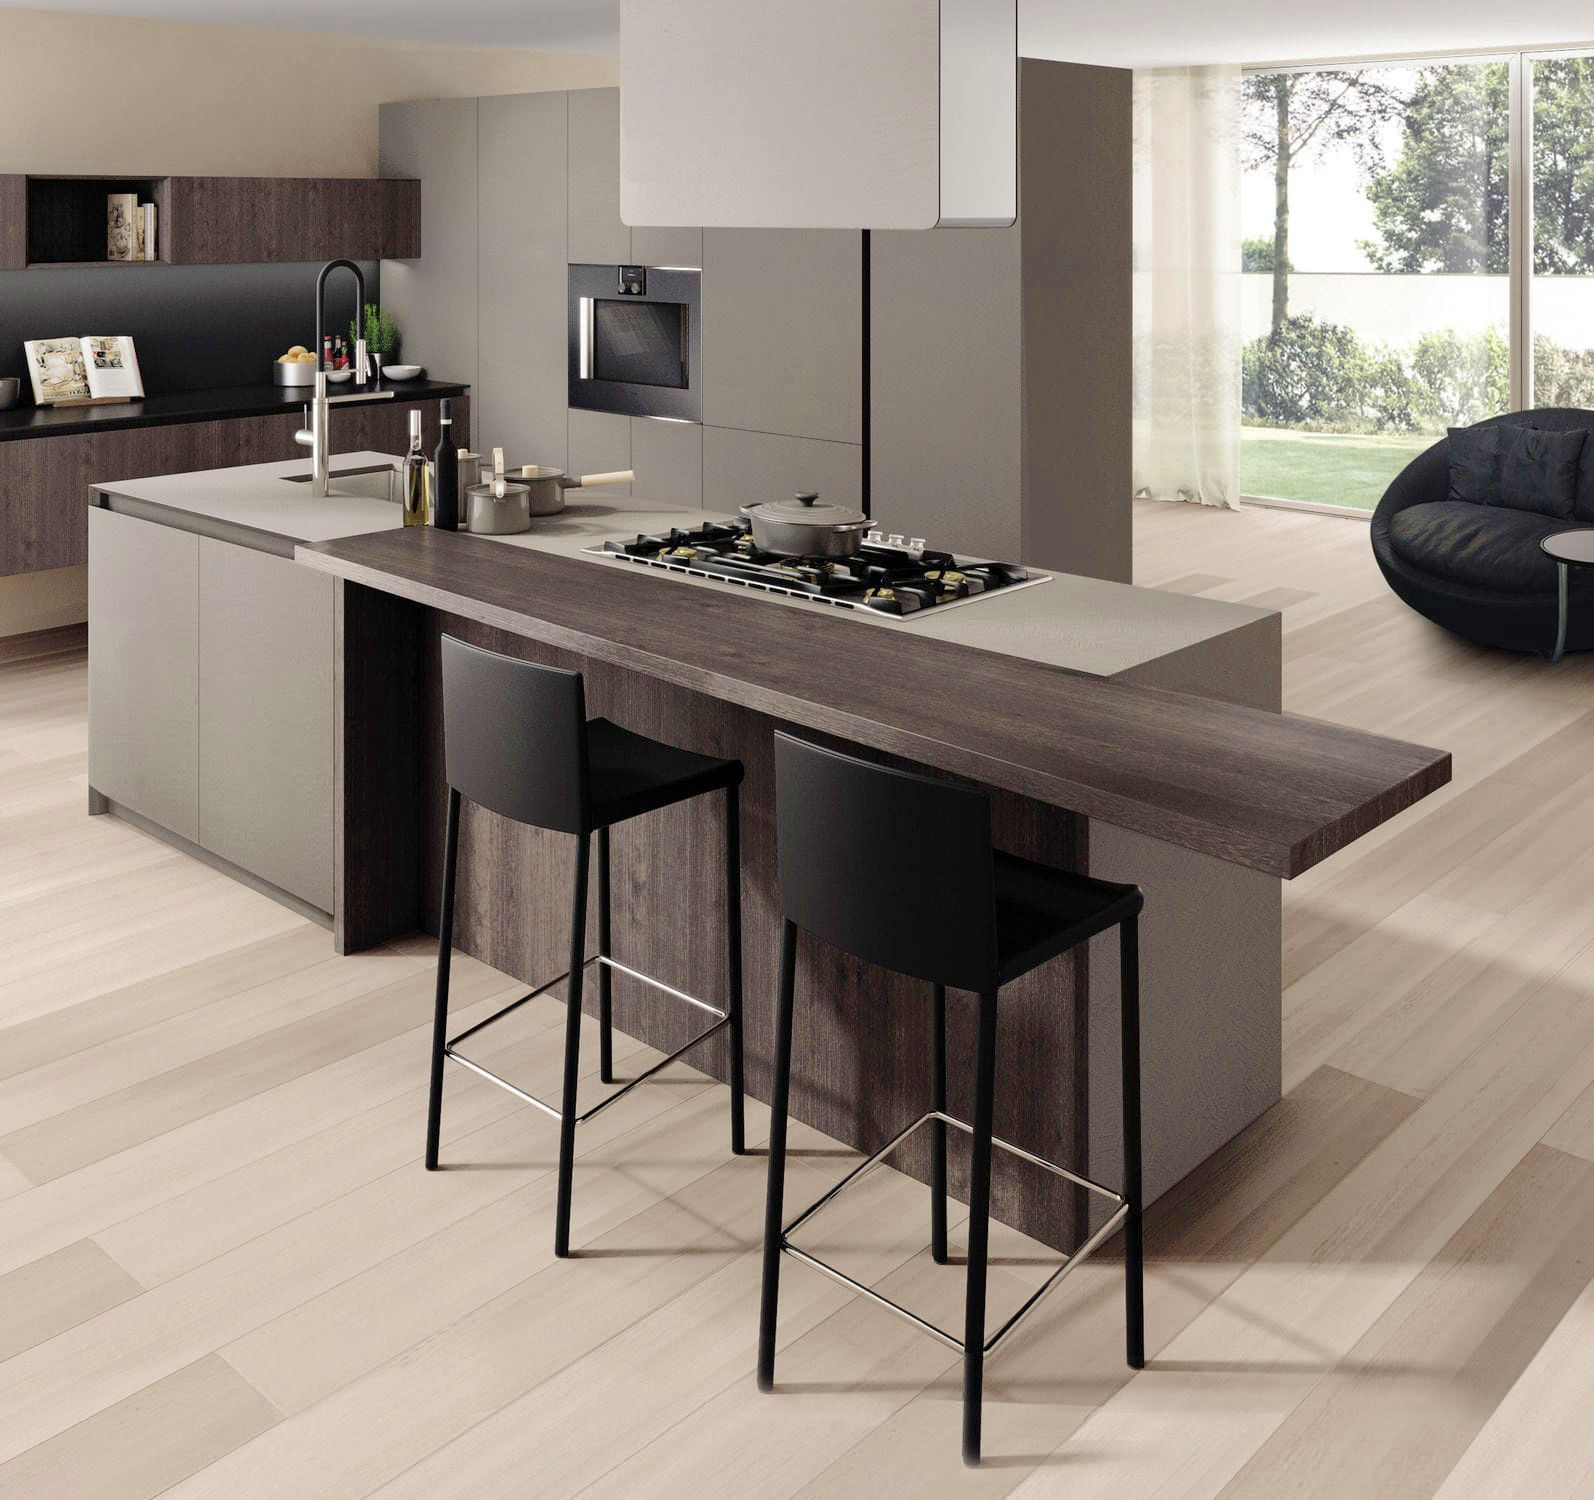 Pin On A Modular Kitchen: Harmonious And Stylish Combination Of Brown And Grey Makes Modular Kitchen Soothing, In This